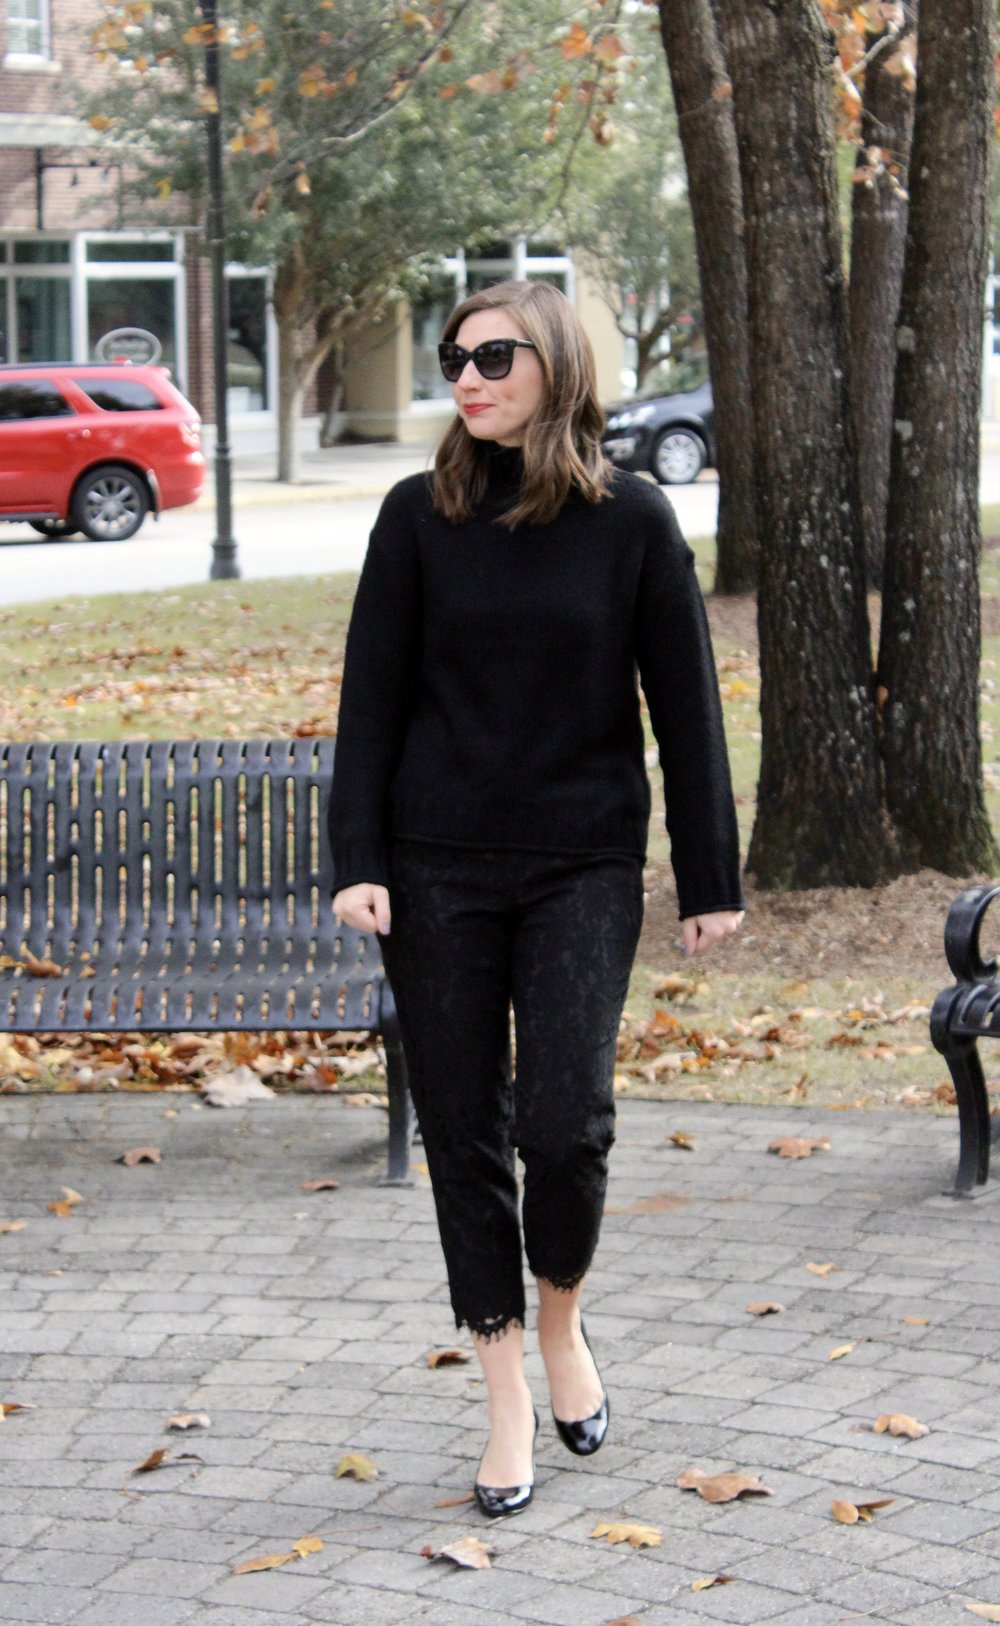 eb6c7aee5cb sweater: bp. nordstrom here; pants: j.crew old, this year's version here;  shoes: coach old, similar here; sunglasses: banana republic here; earrings:  banana ...